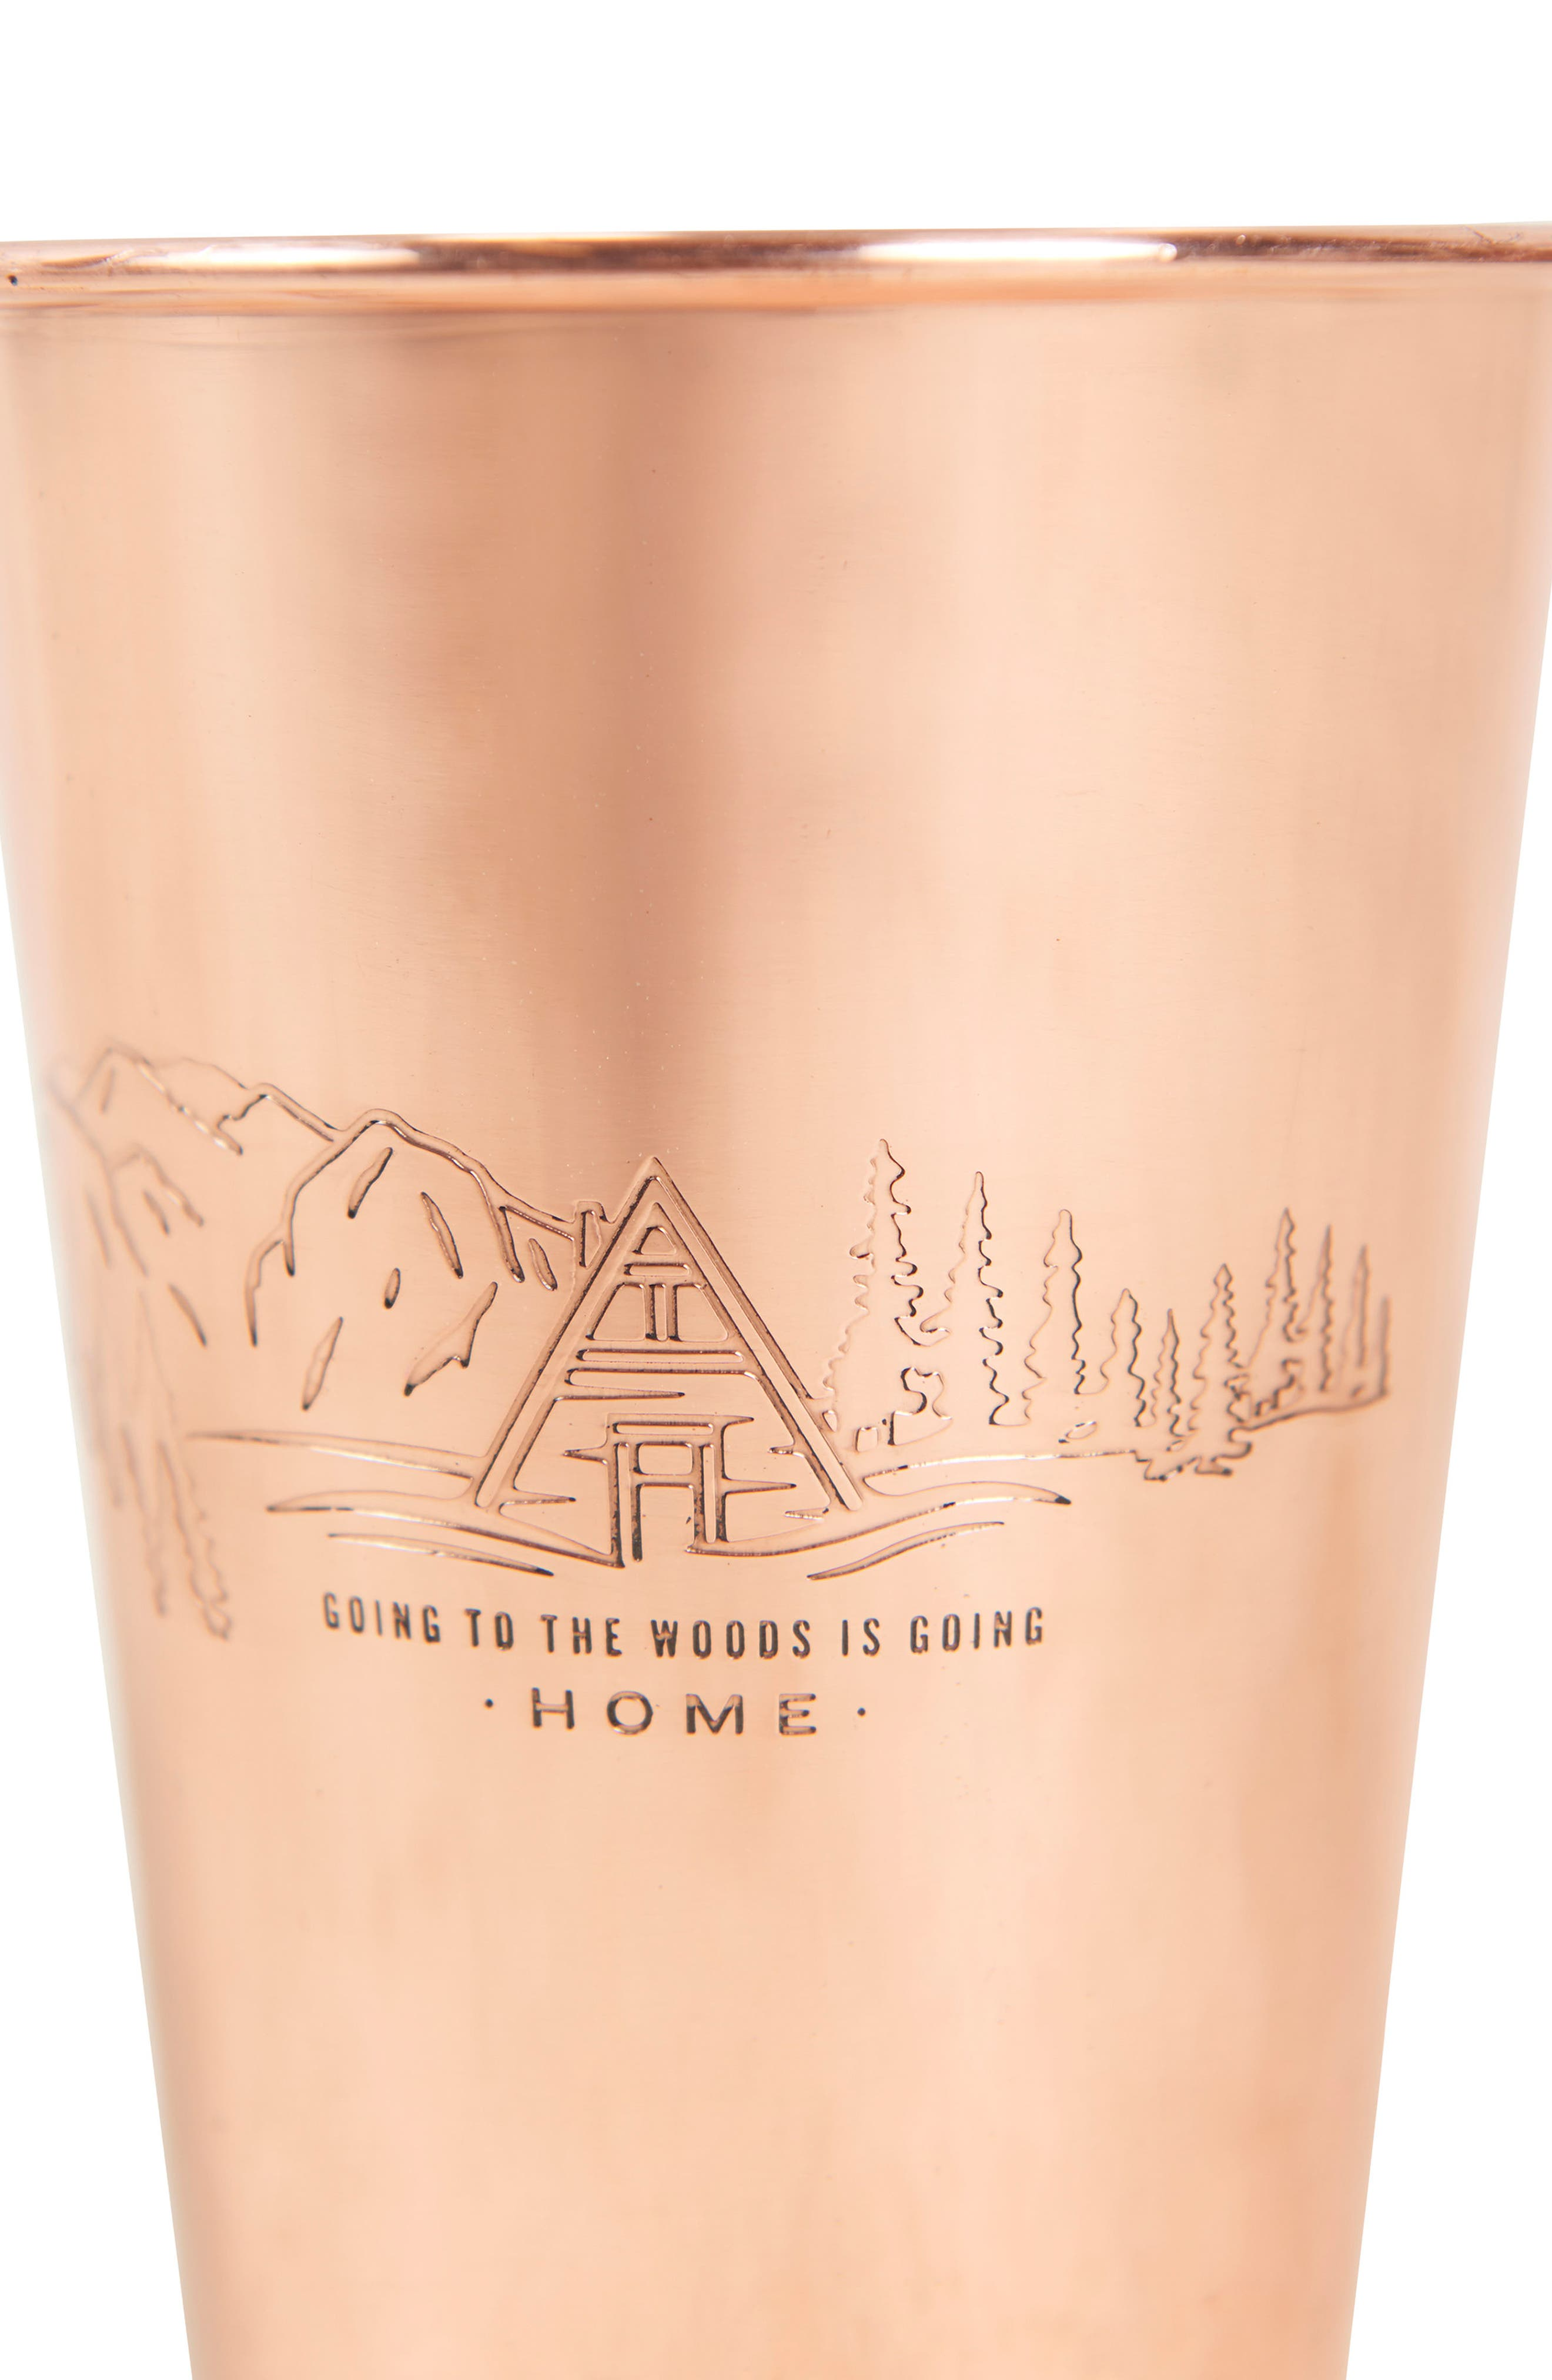 Engraved Copper Tumbler,                             Alternate thumbnail 2, color,                             TO THE WOODS